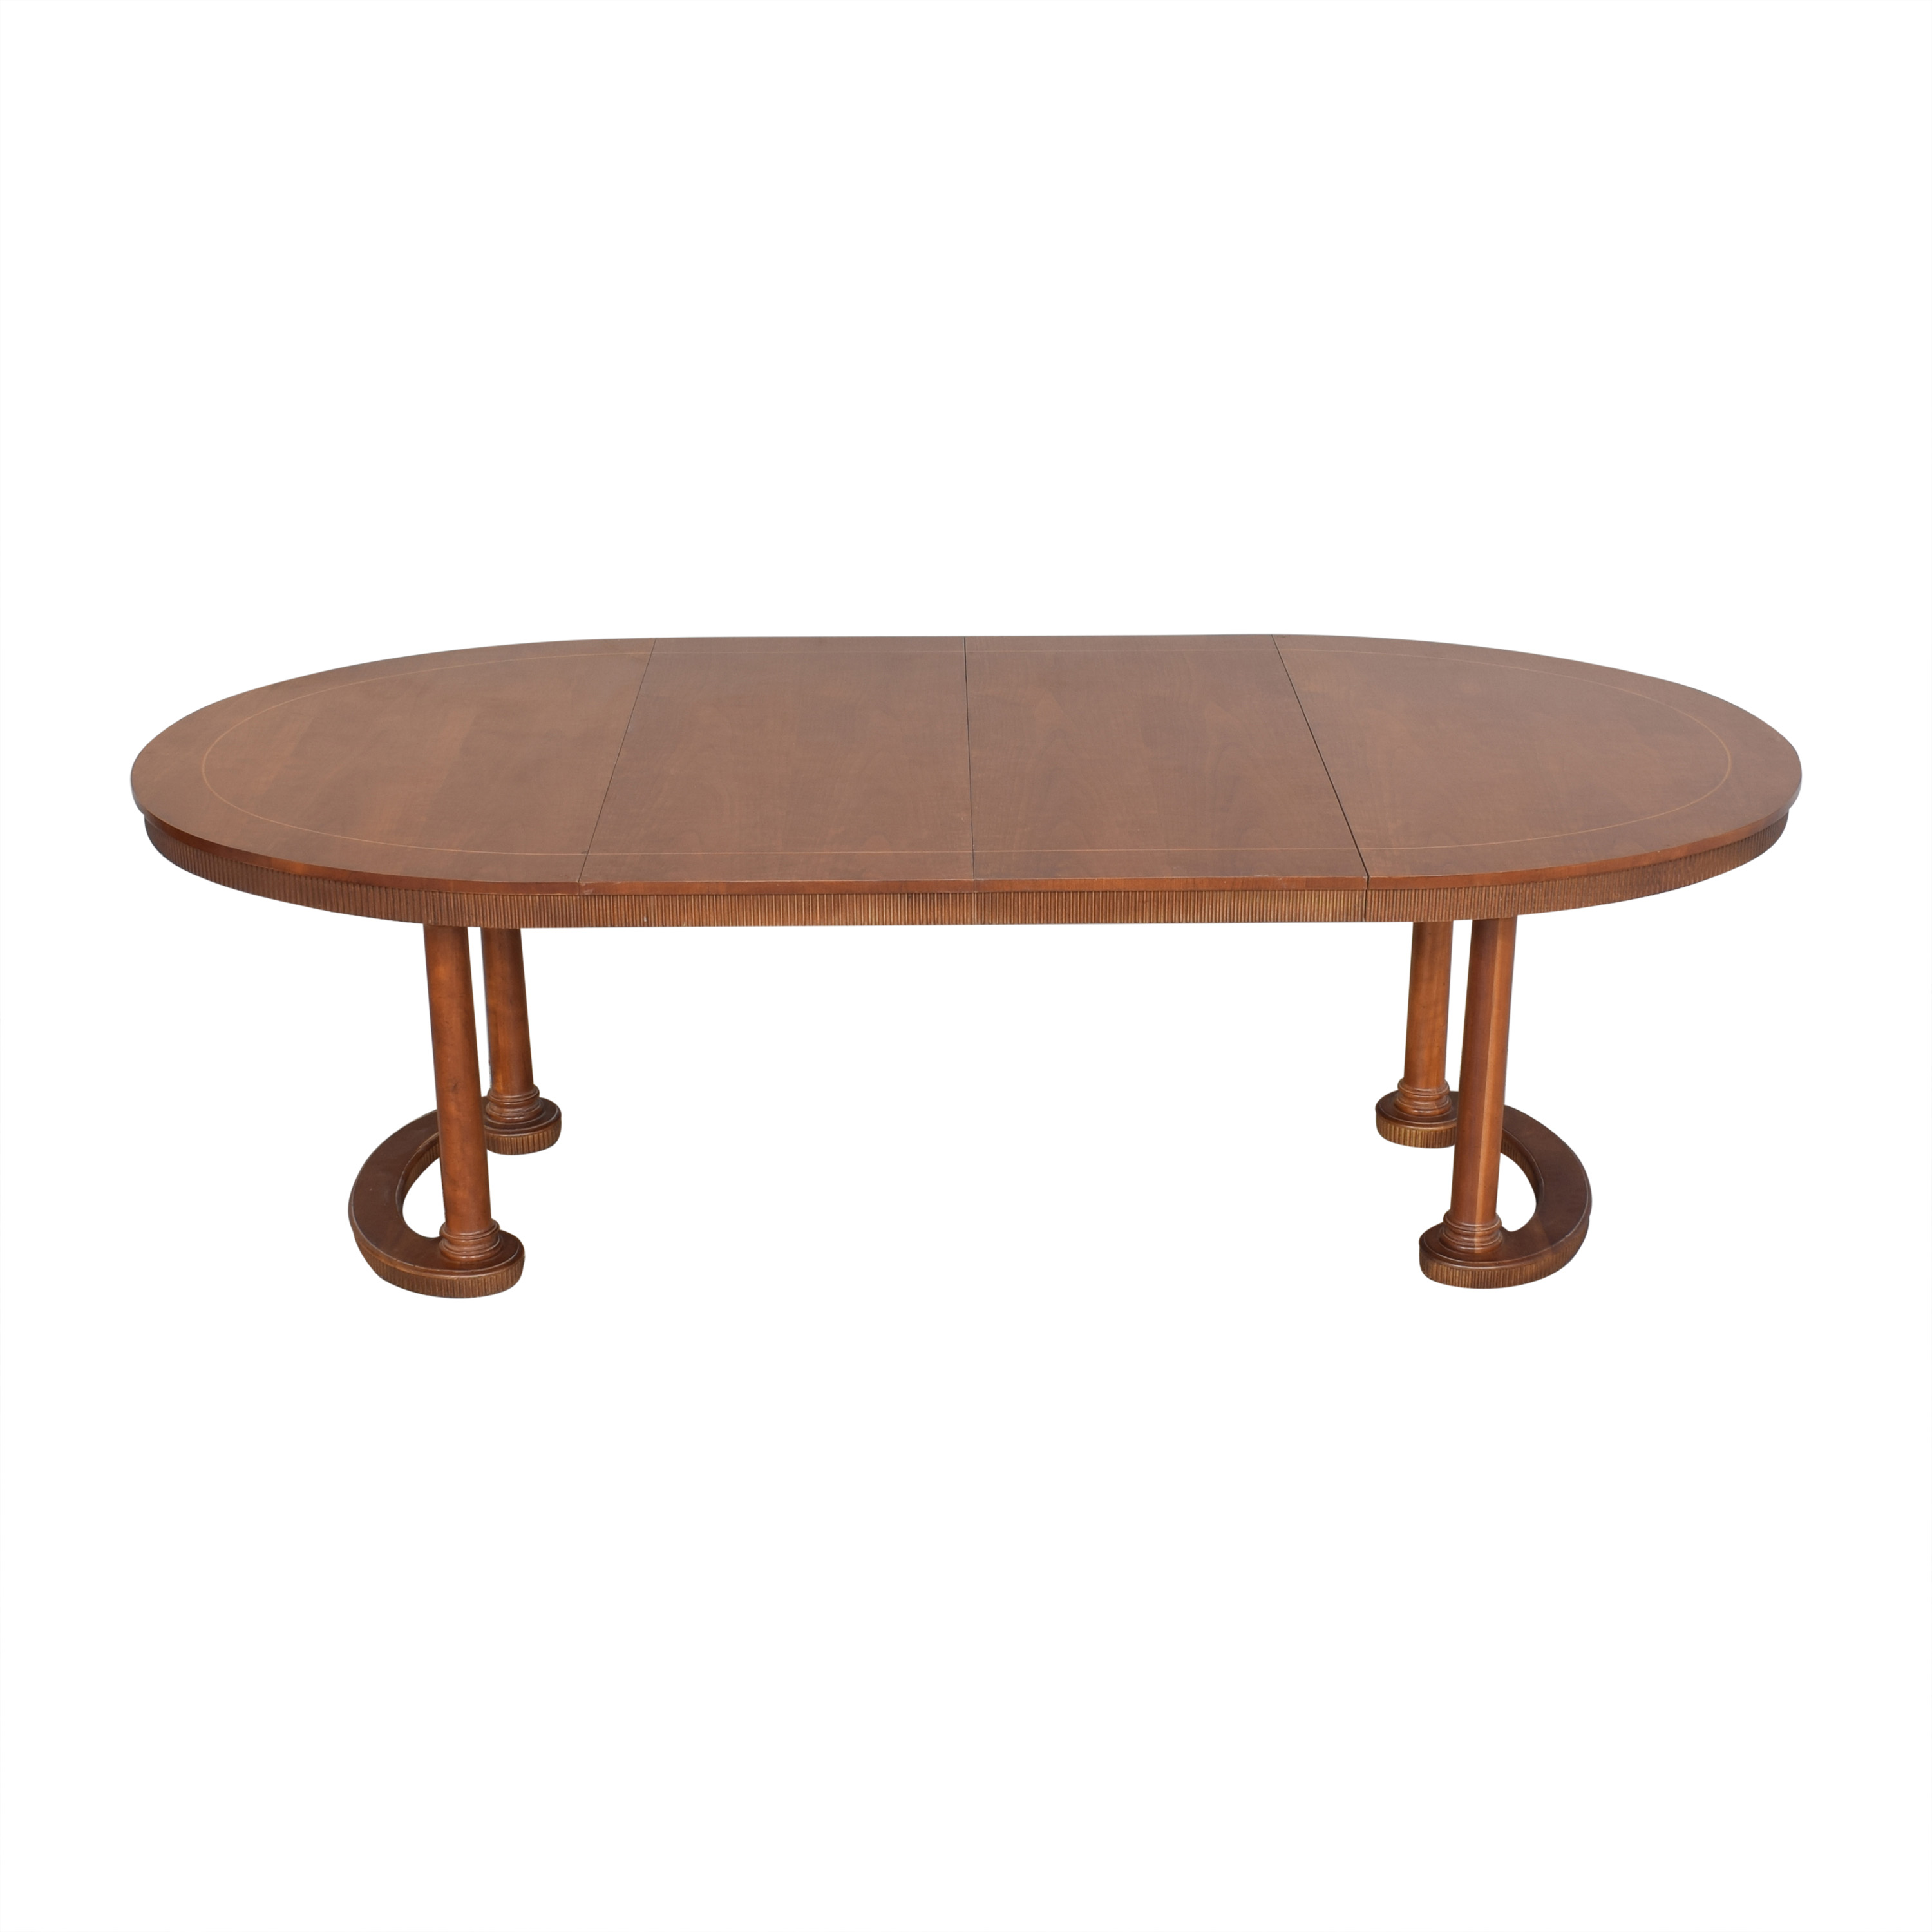 Baker Furniture Baker Furniture Oval Extendable Dining Table nyc